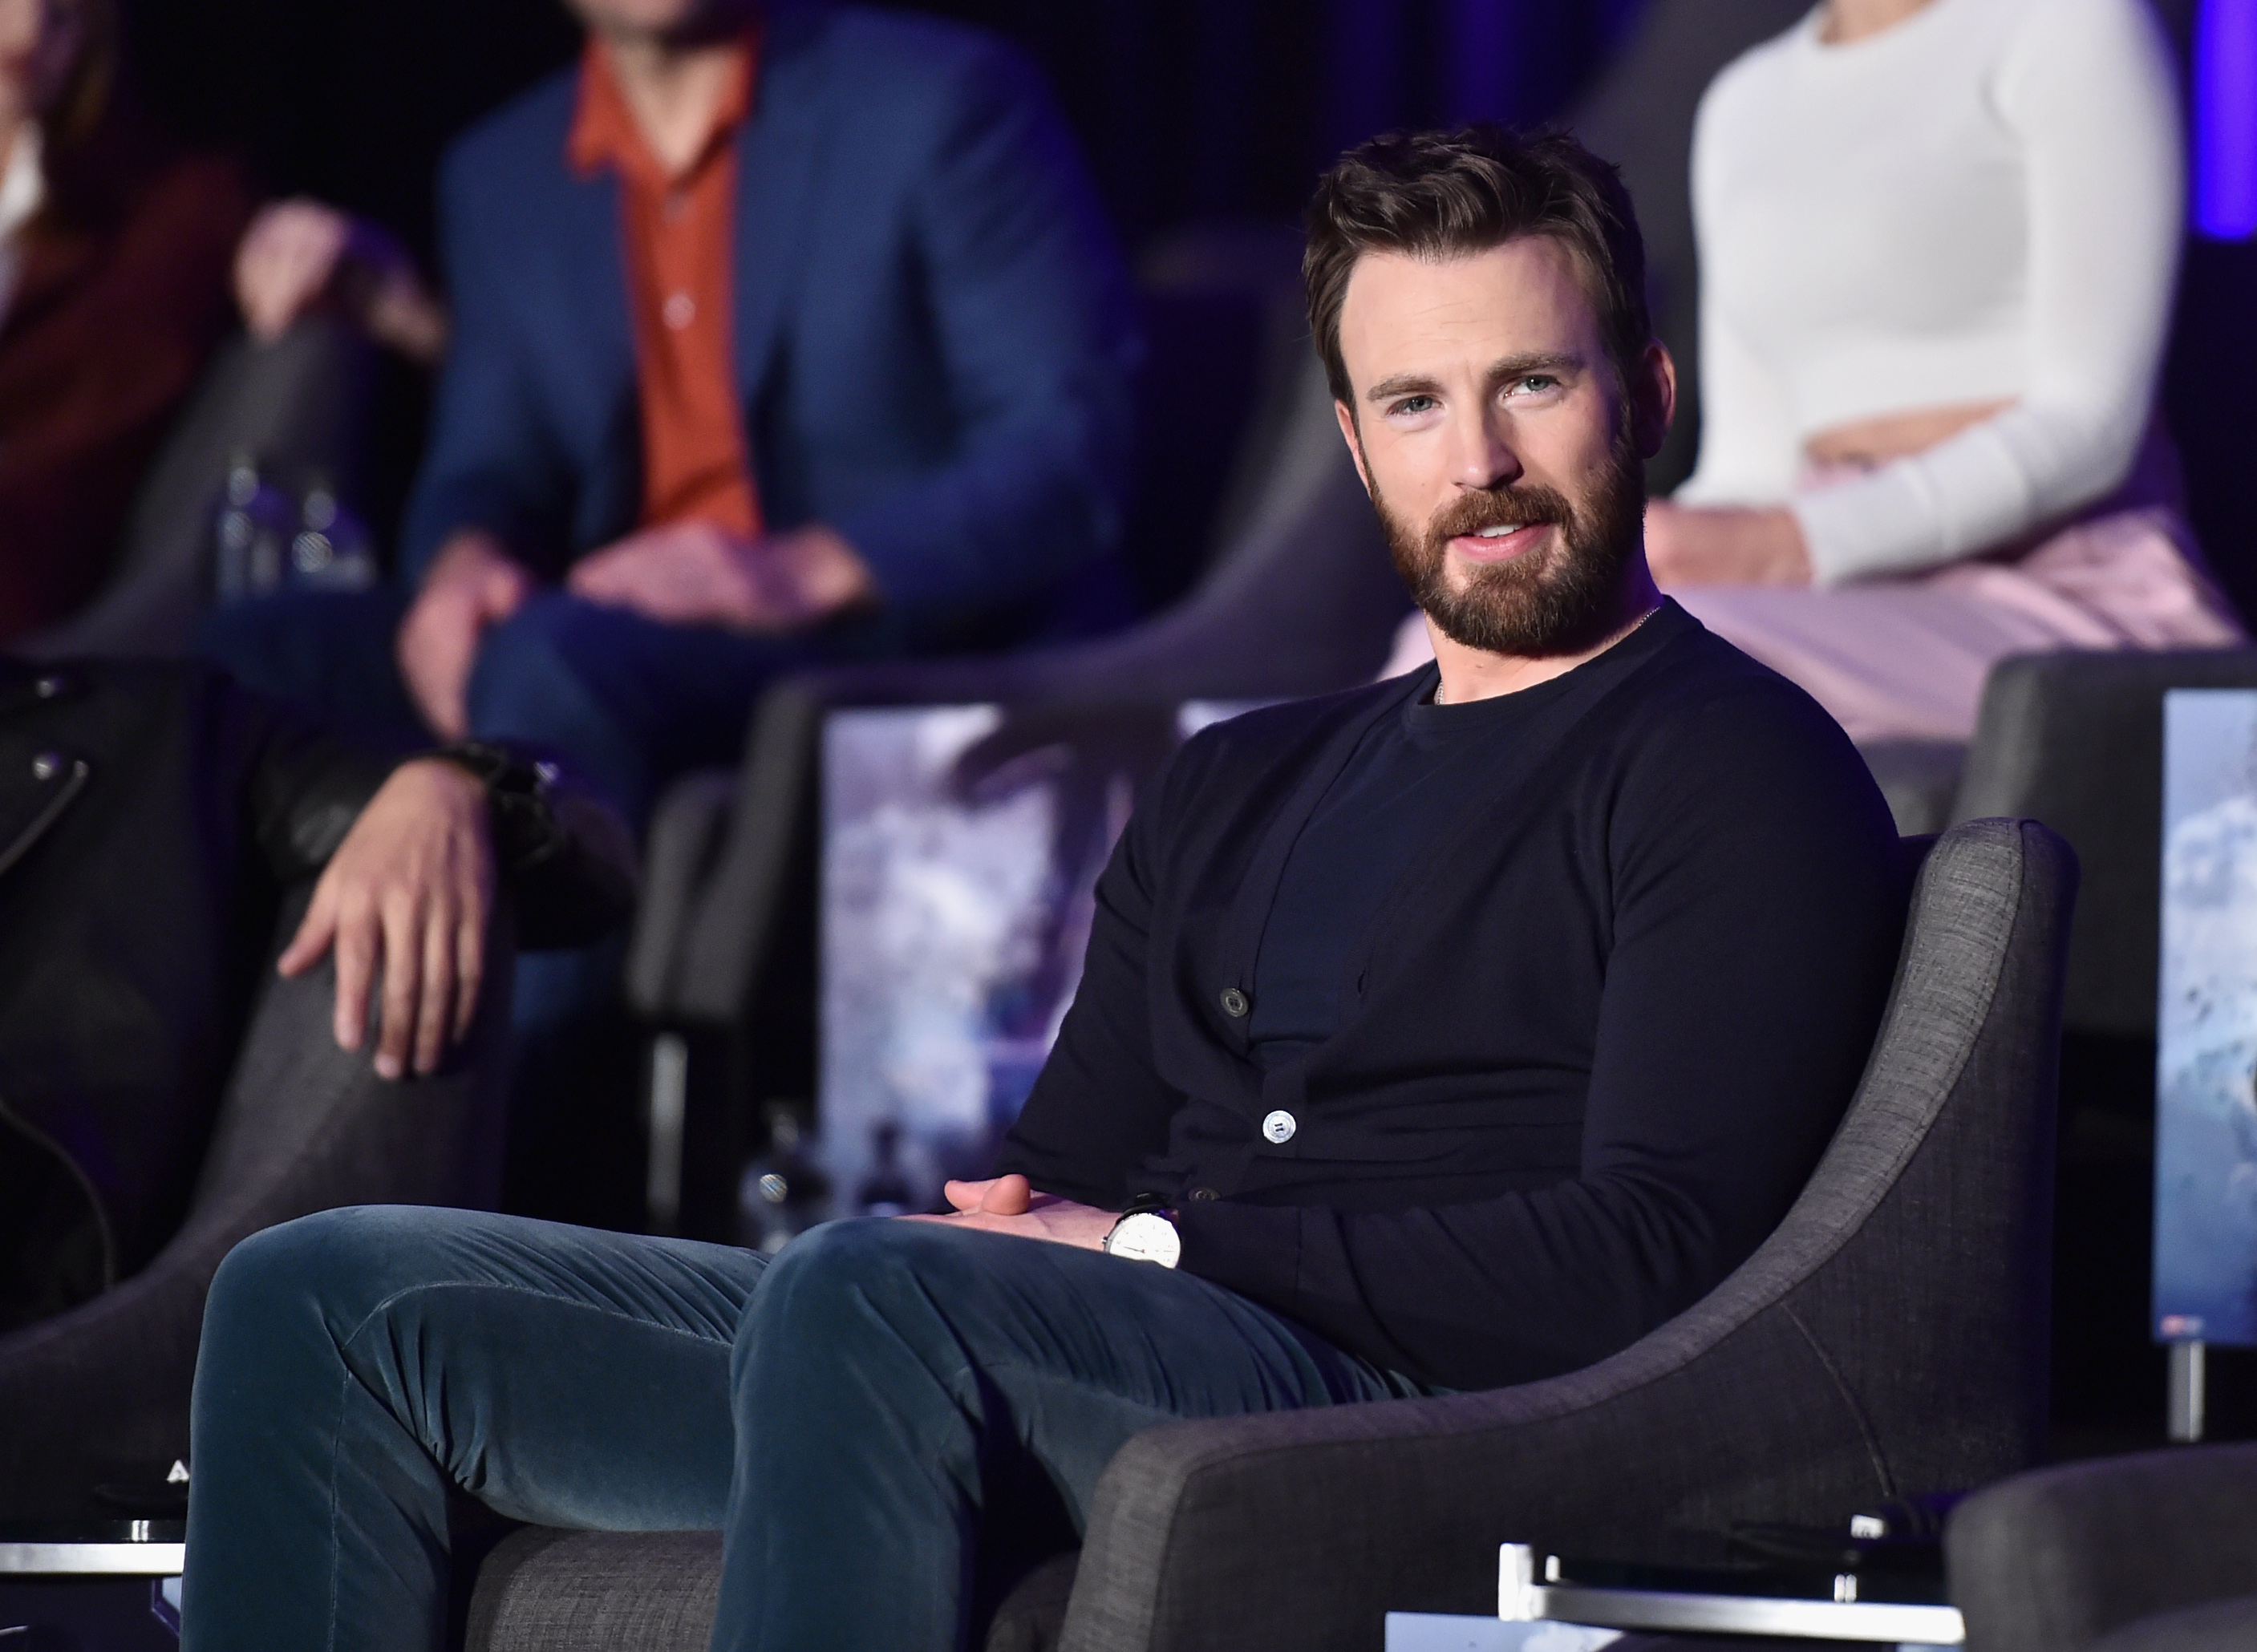 Here's why Chris Evans was meeting with members of Congress